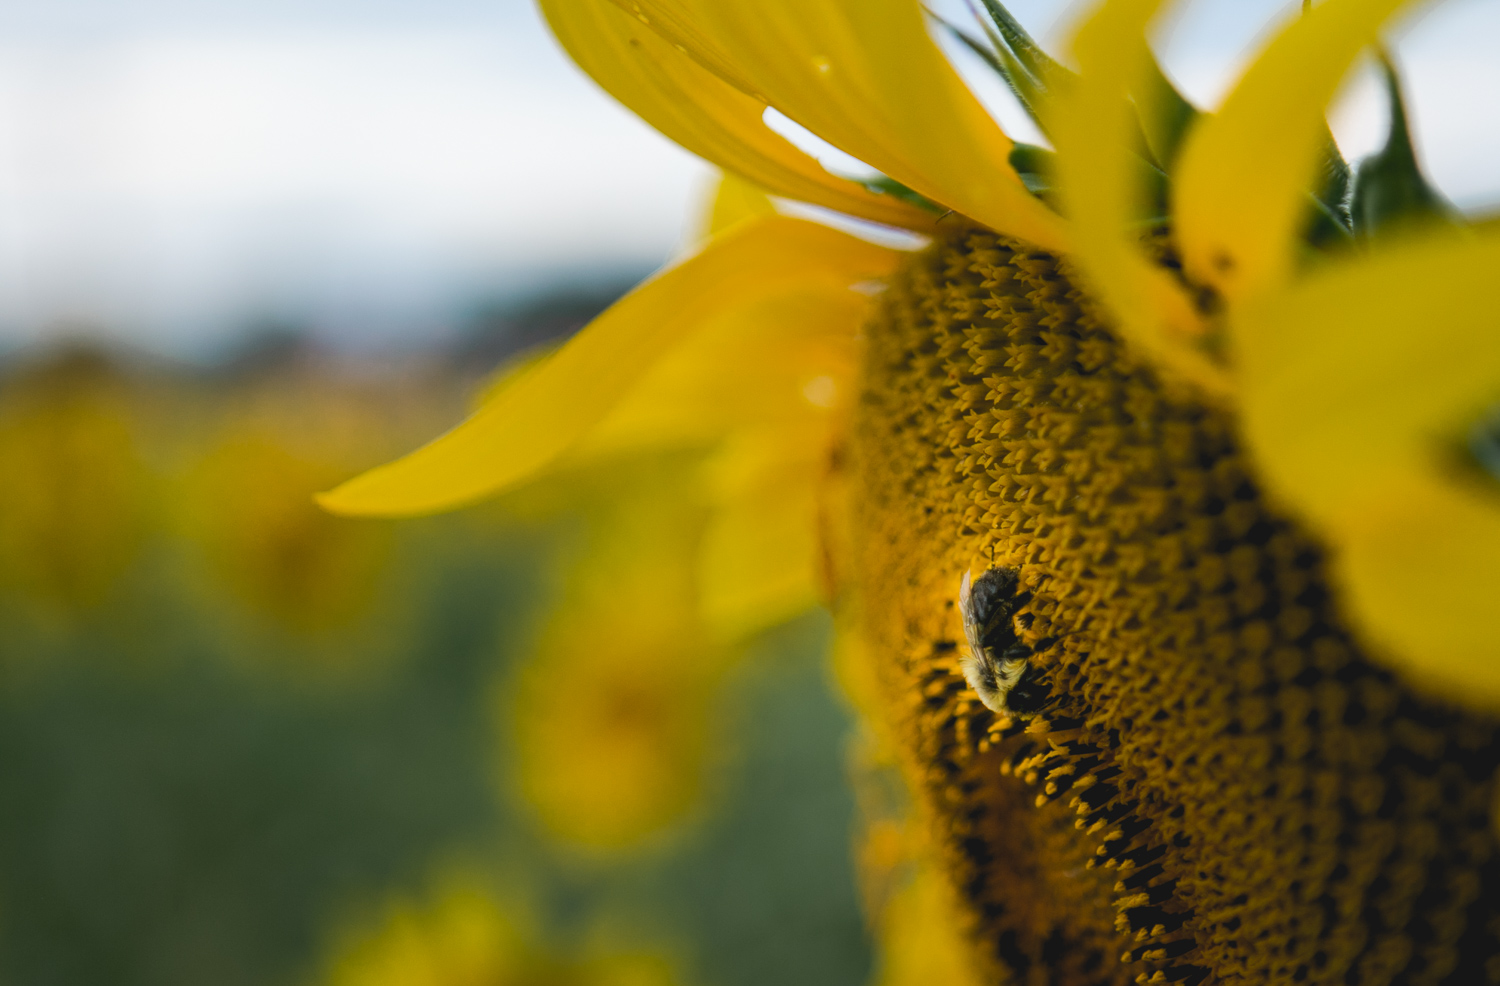 While at a Photo Mini Session this bumble bee landed on a sunflower at Britt's Garden Acres Farm in Manhattan Ks. Beautiful pictures of sunflowers captured by Renee McDaniel.